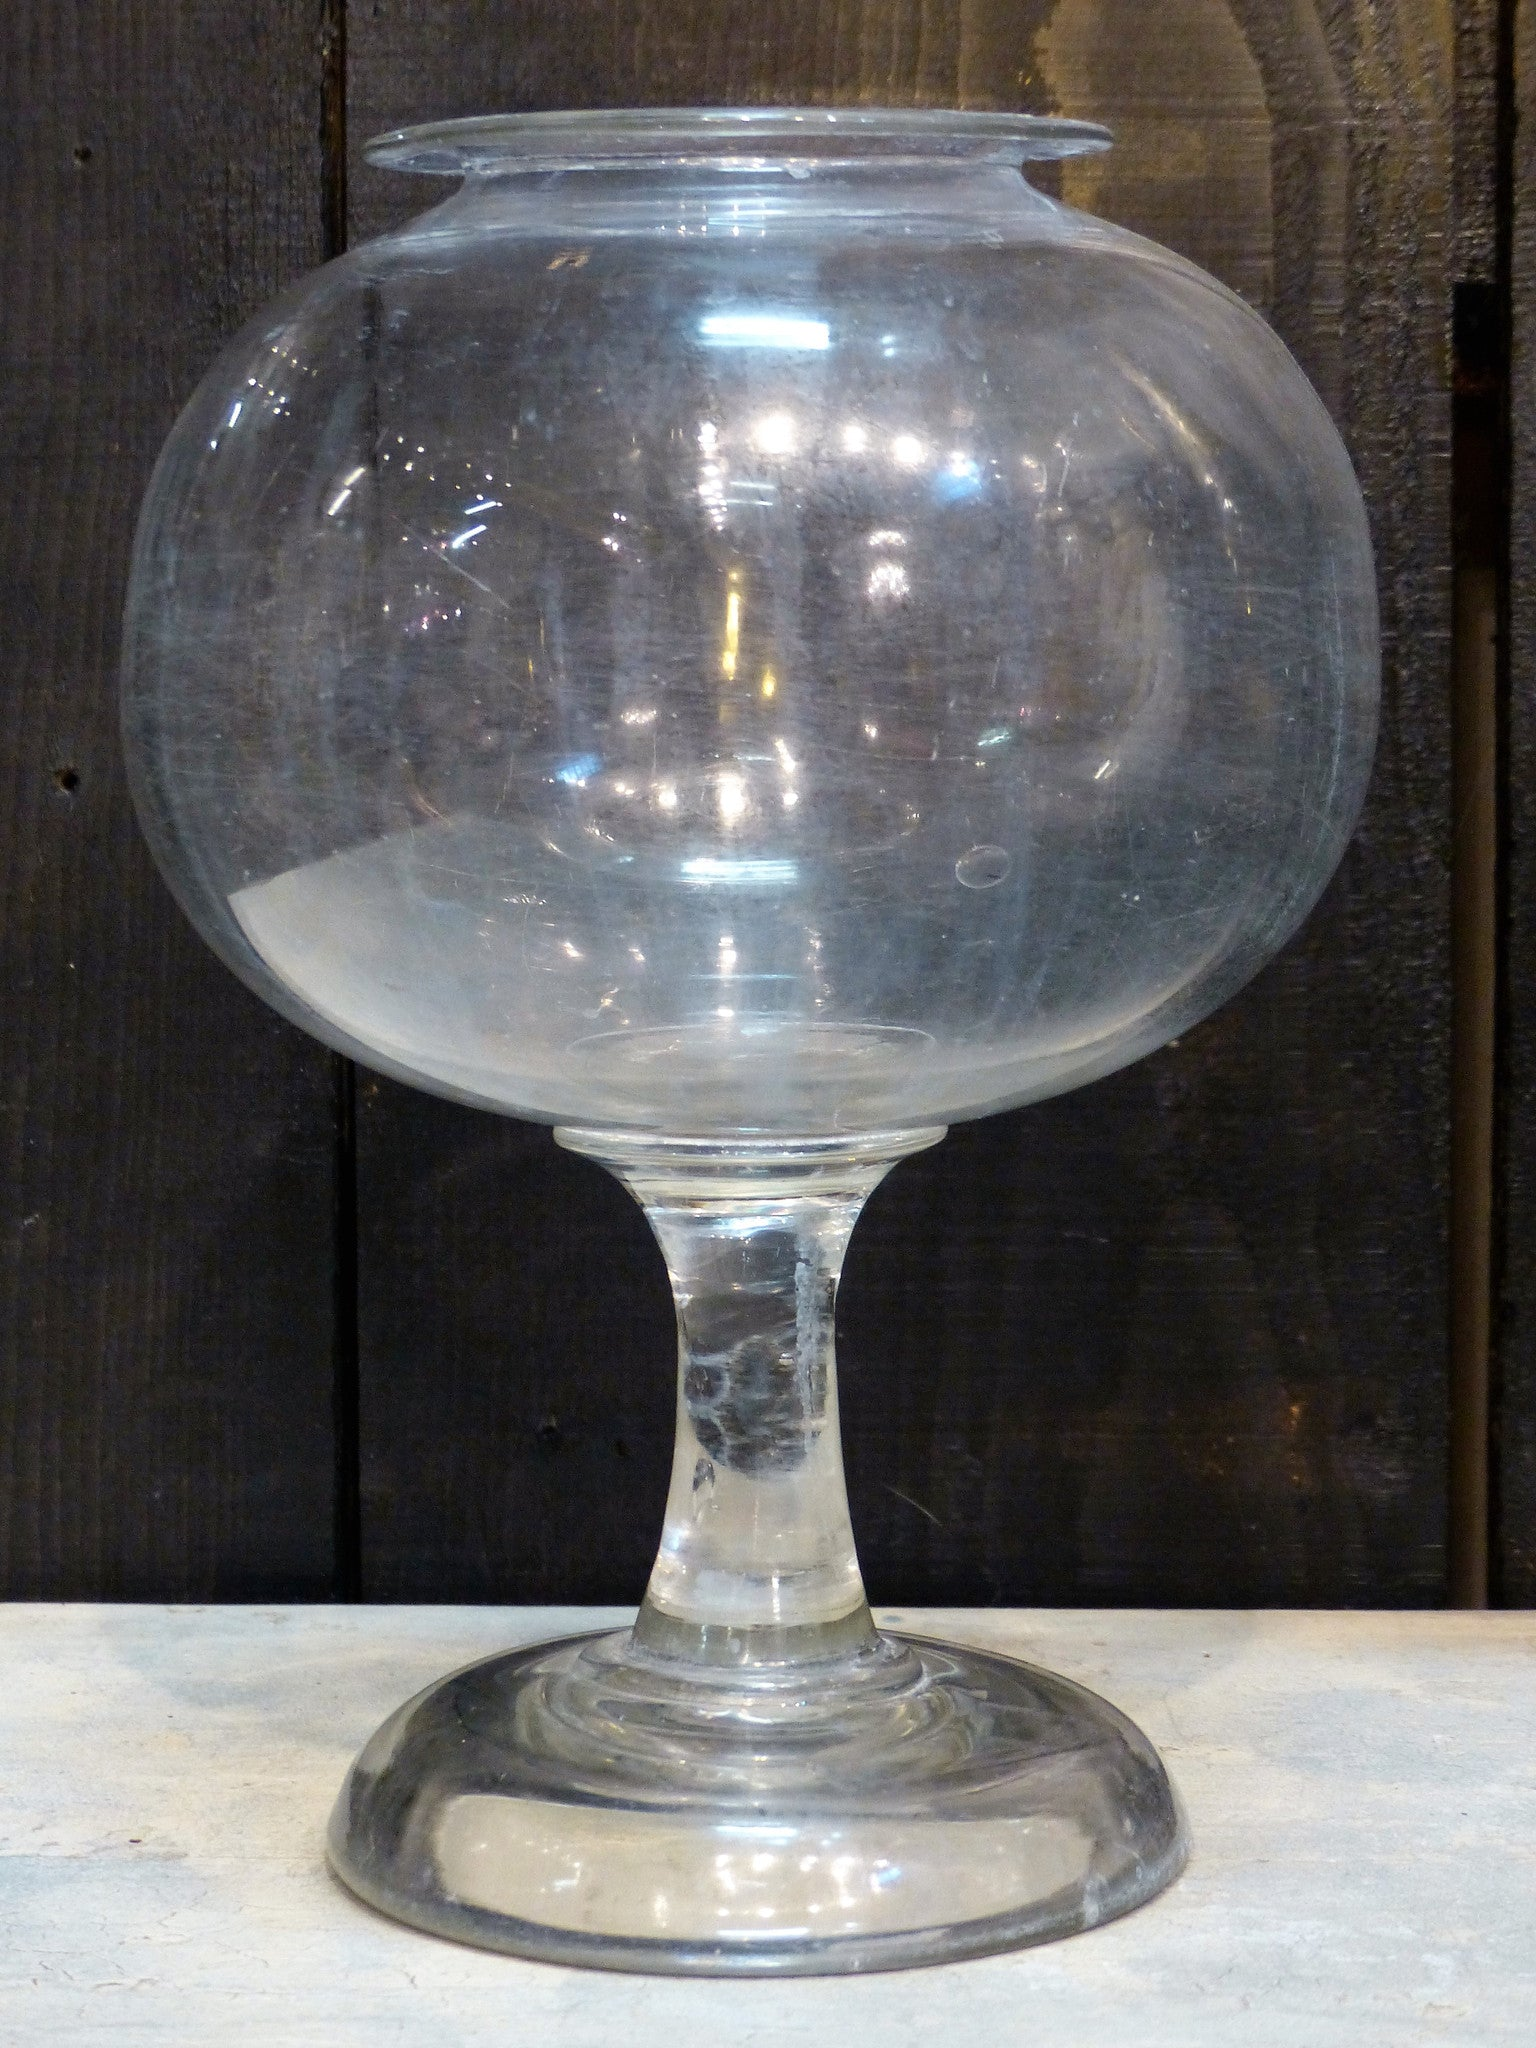 19th century French apothecary jar glass